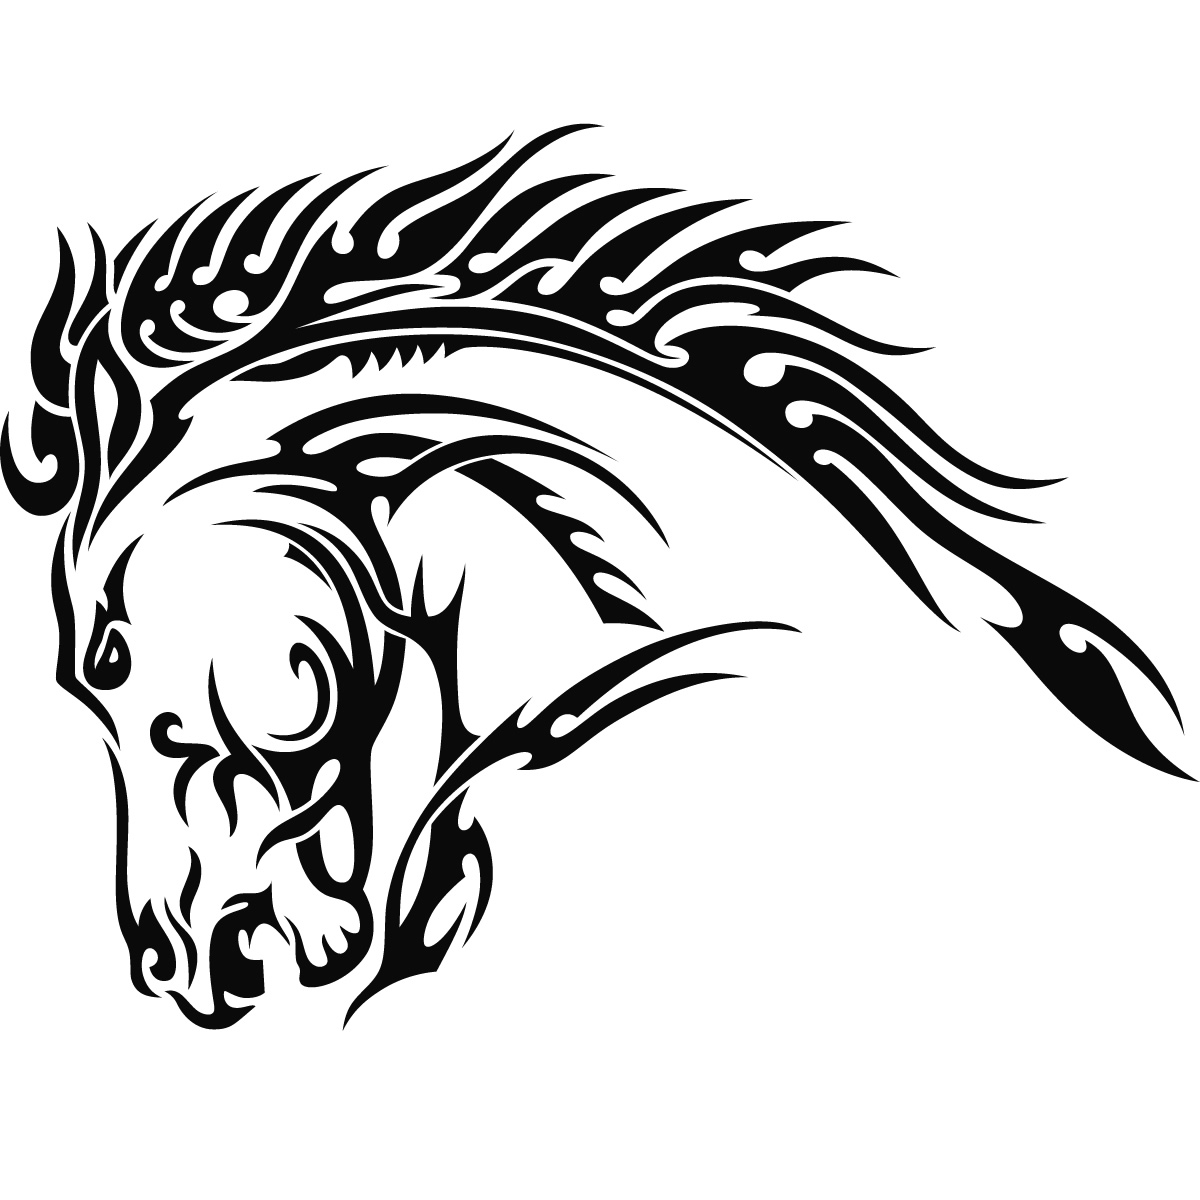 sticker tribal wall 34.jpg Art Sticker Head Horses Tribal Wall